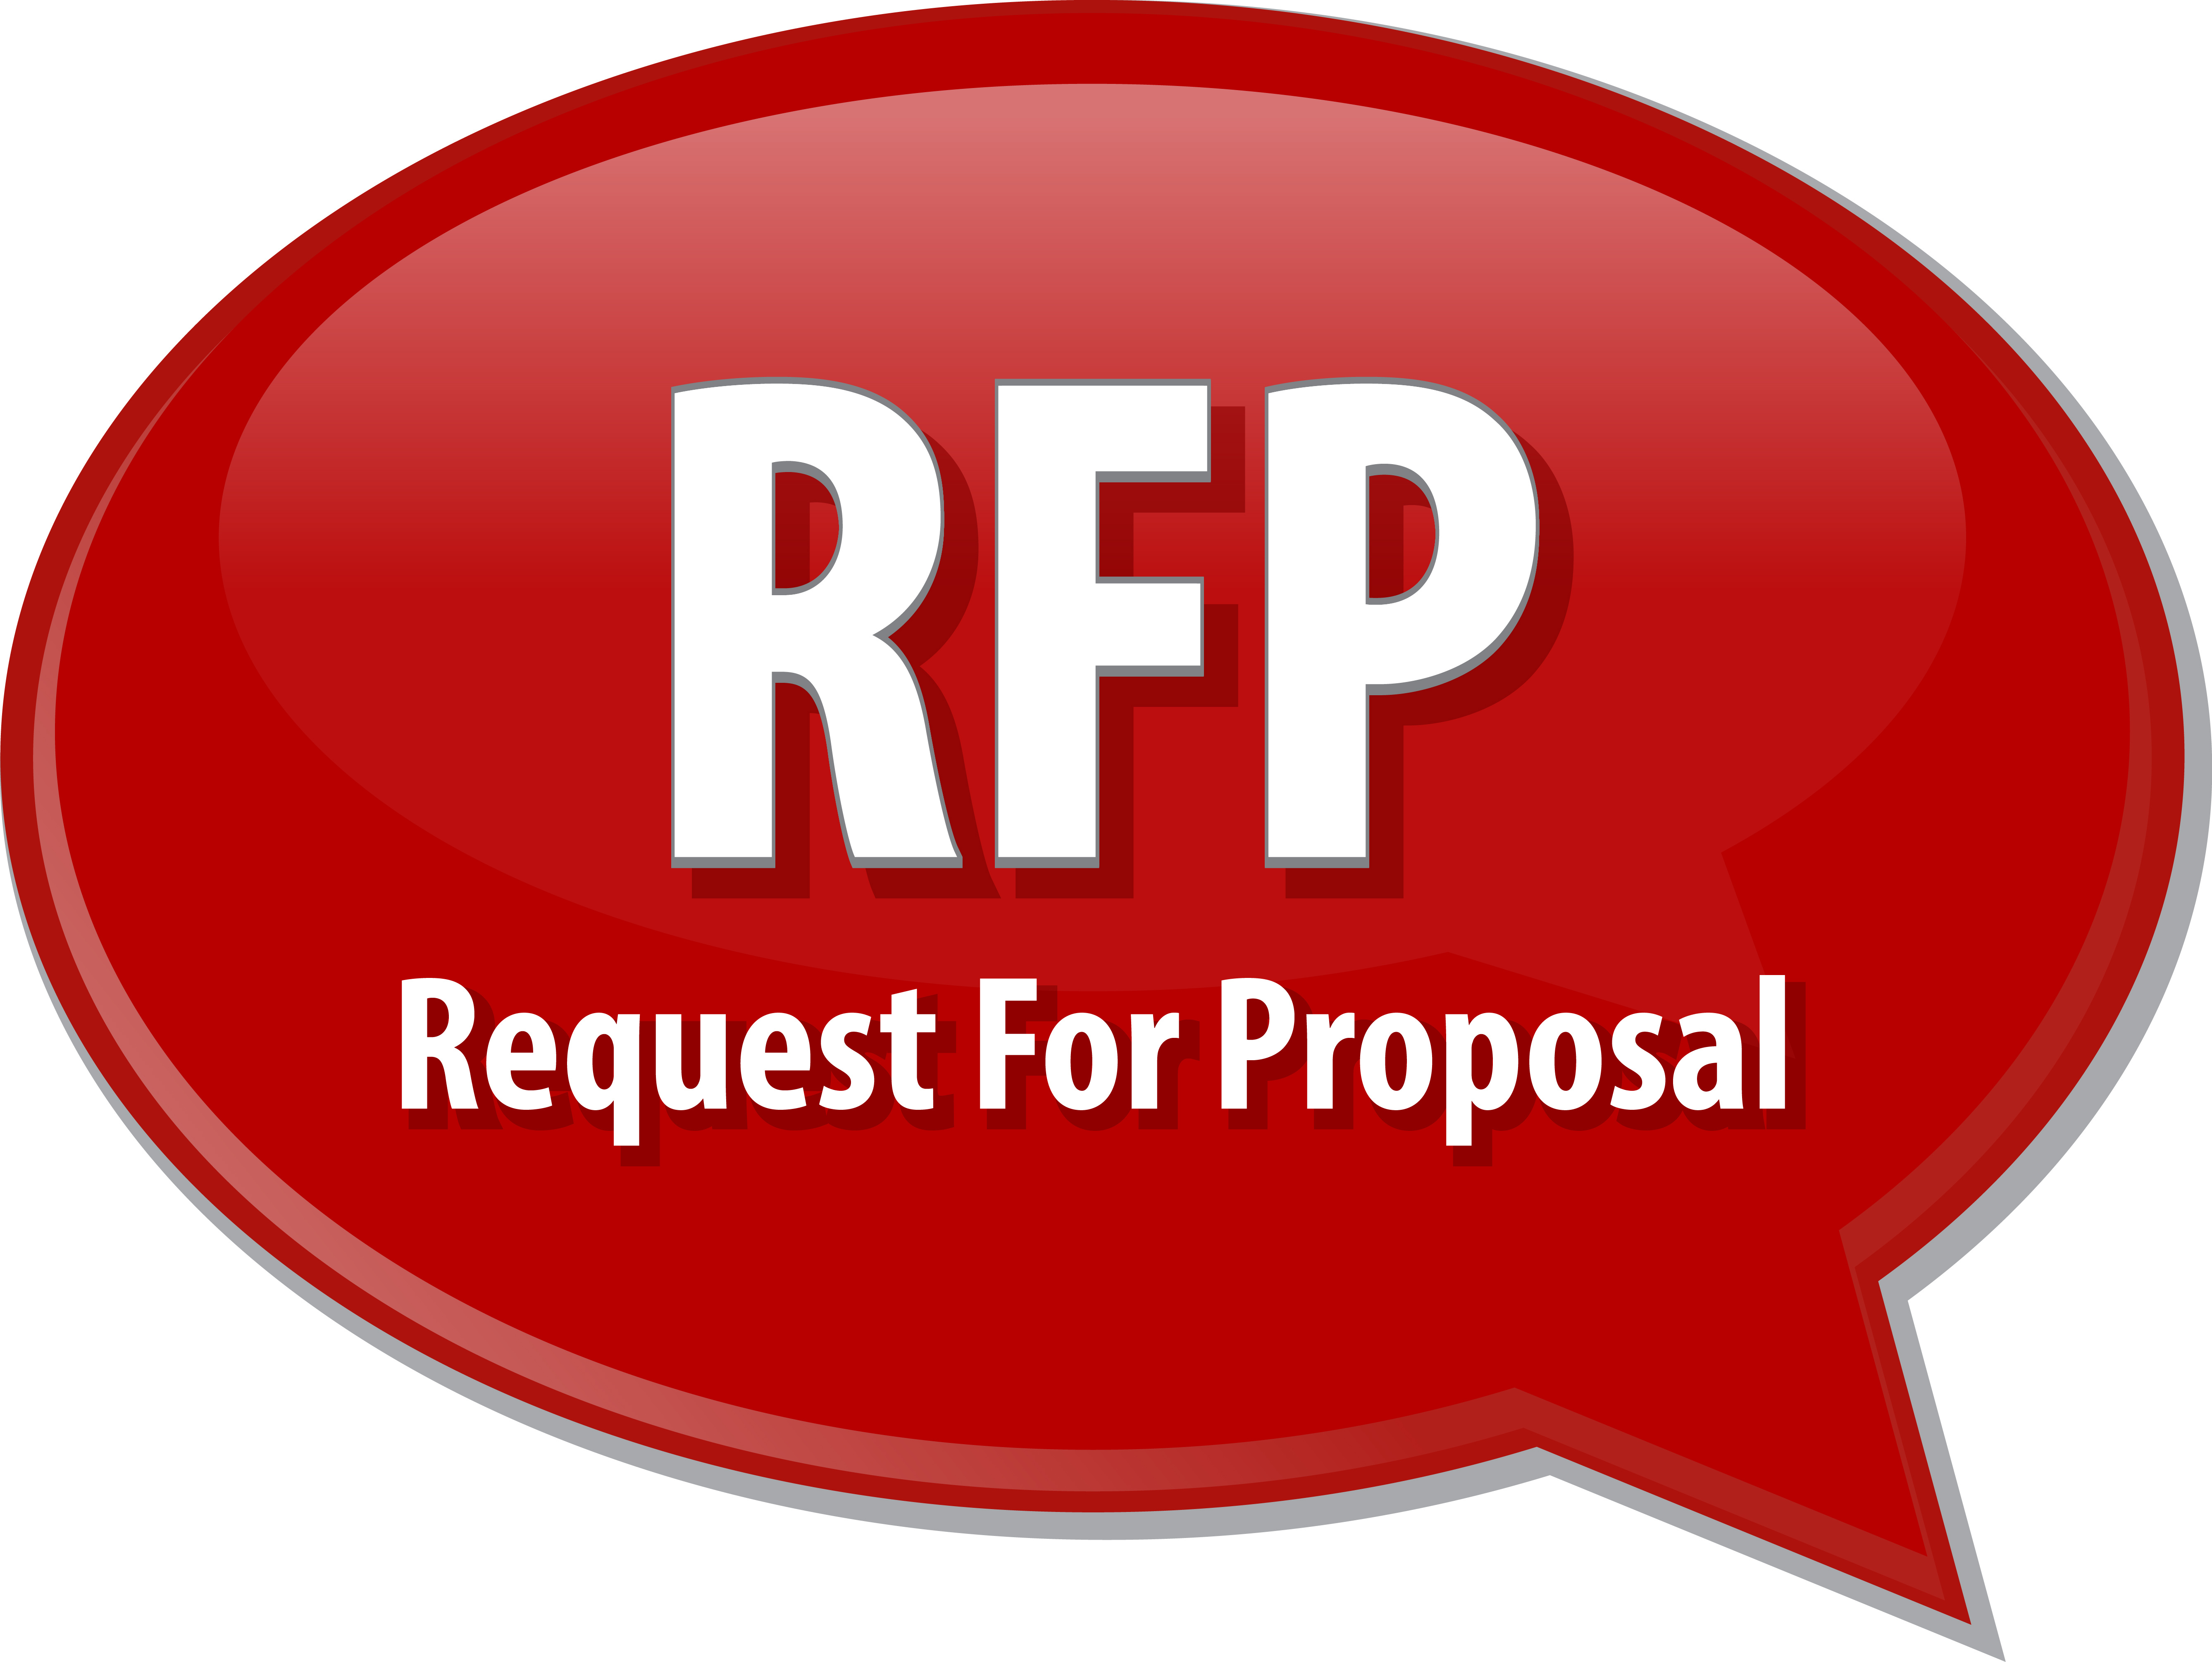 RFP in a bubble